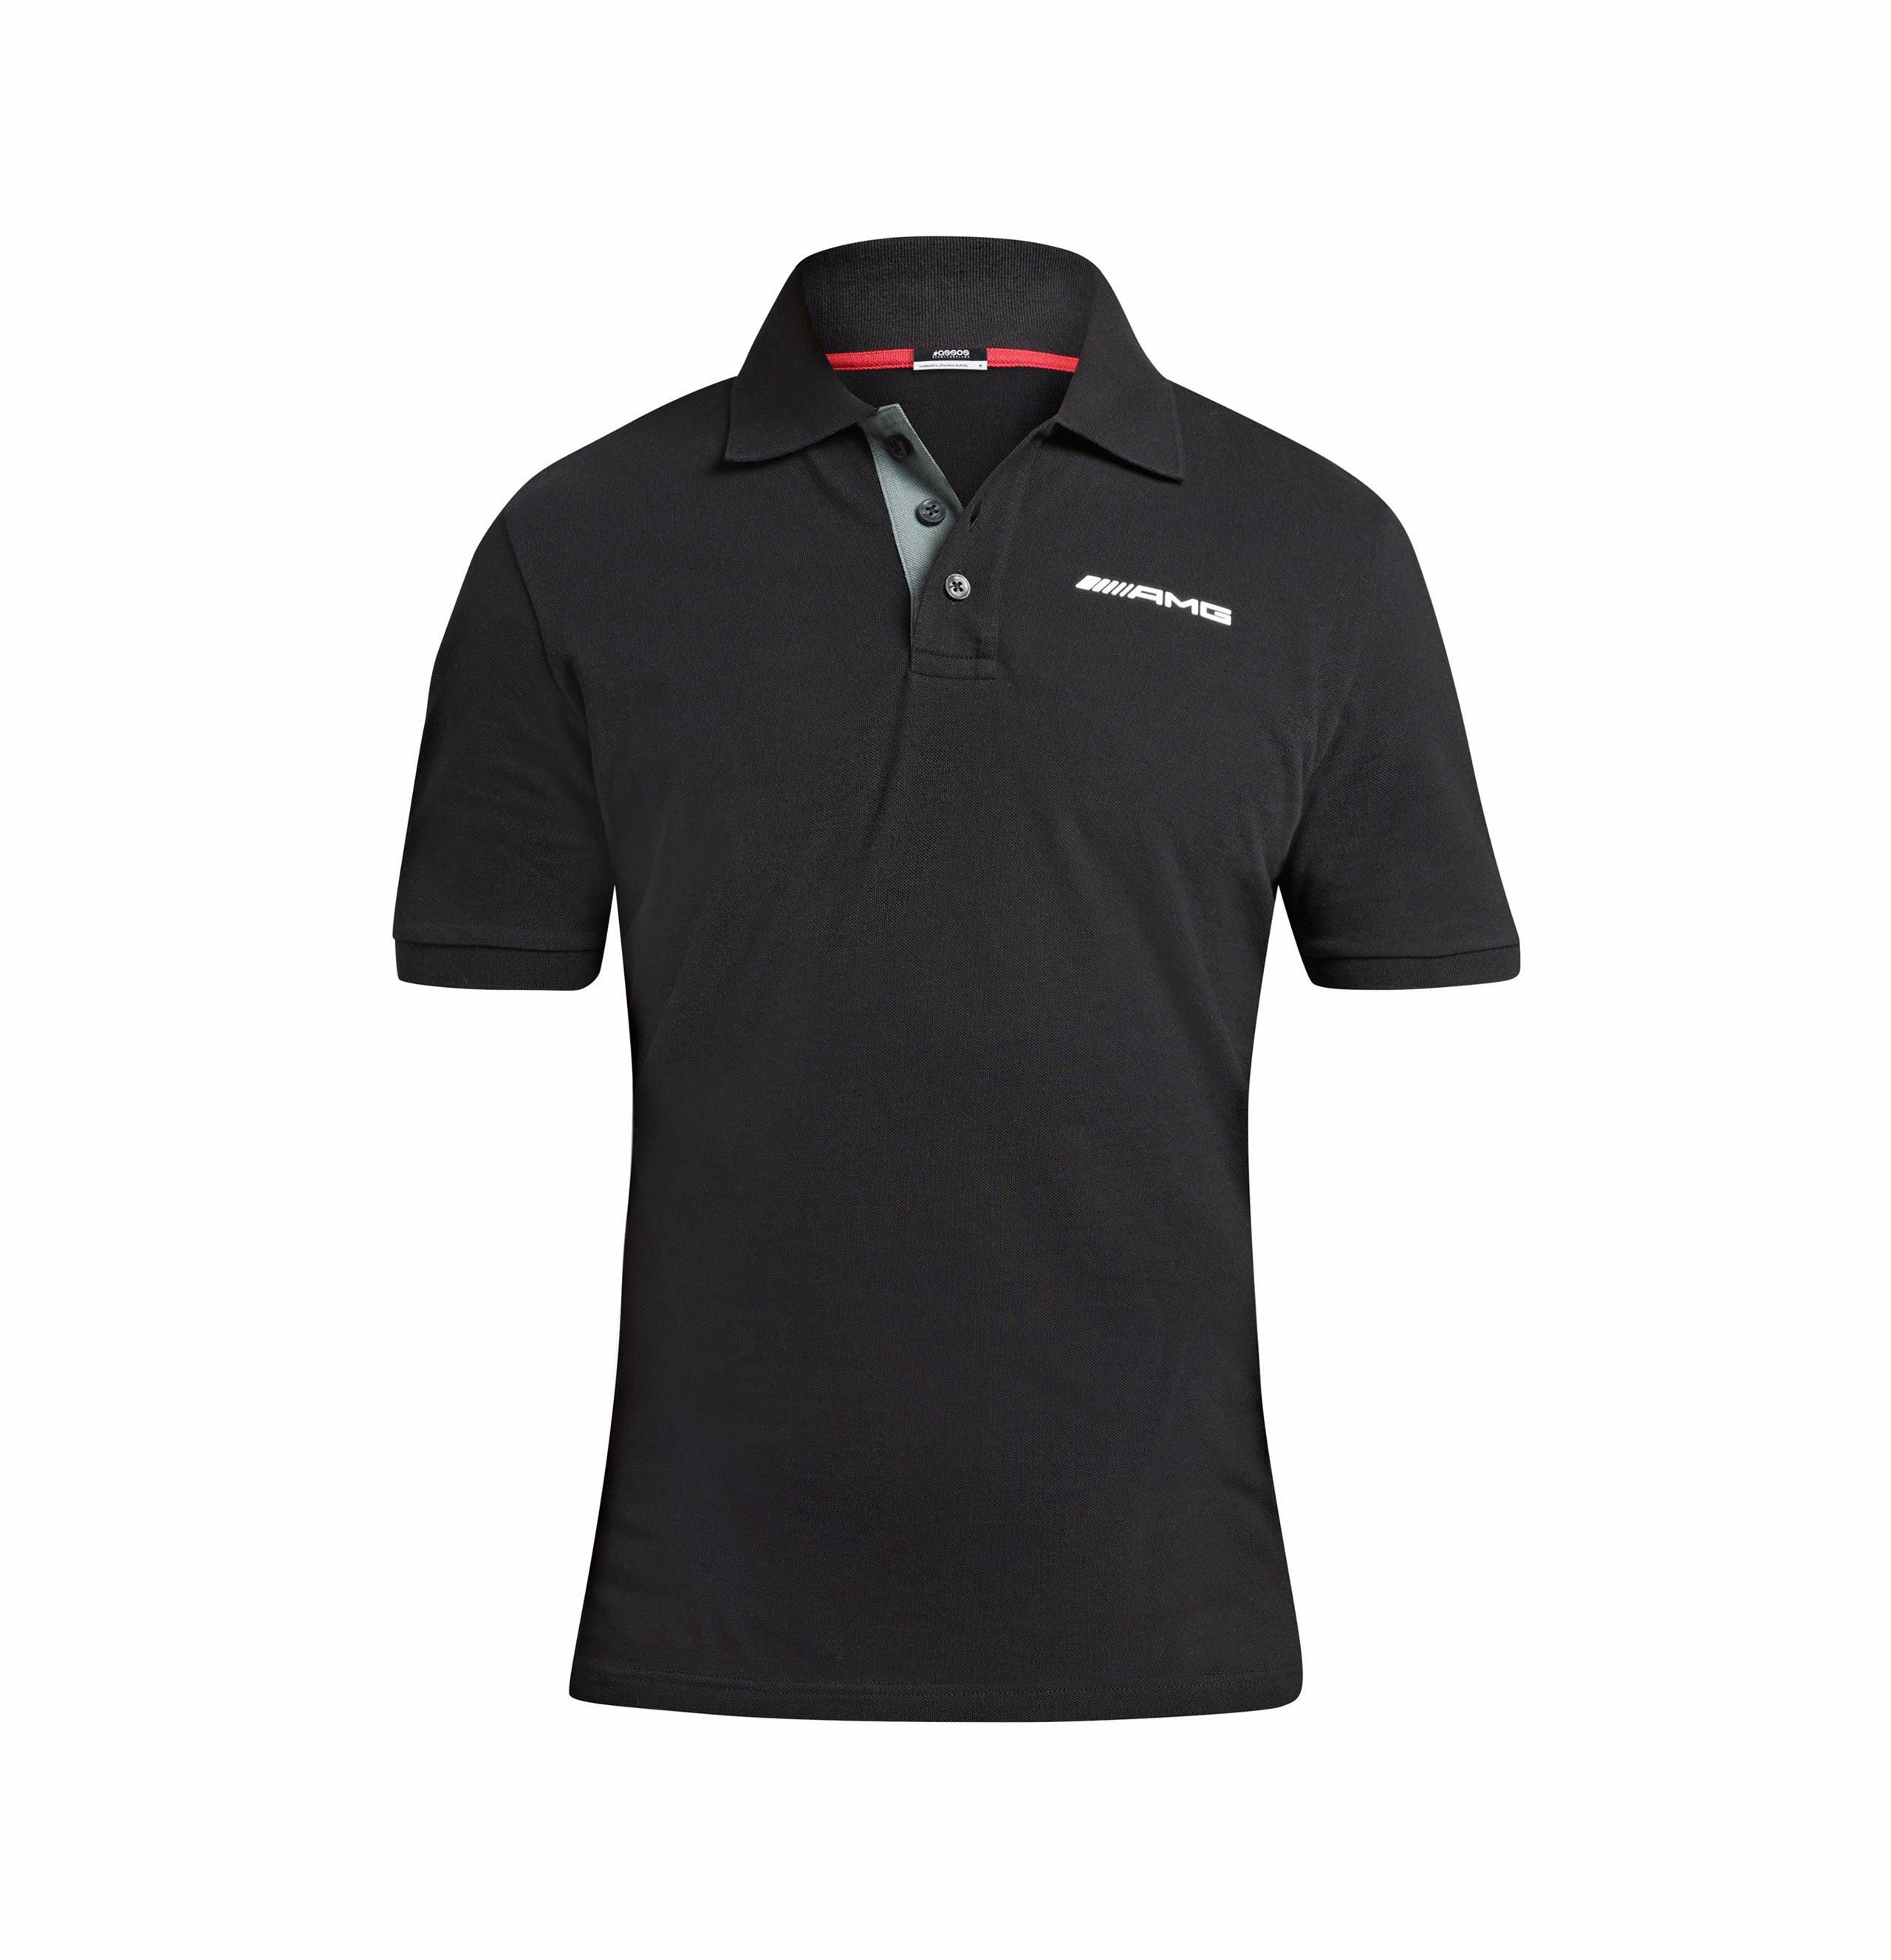 AMG POLO SHIRT SPORT bundle